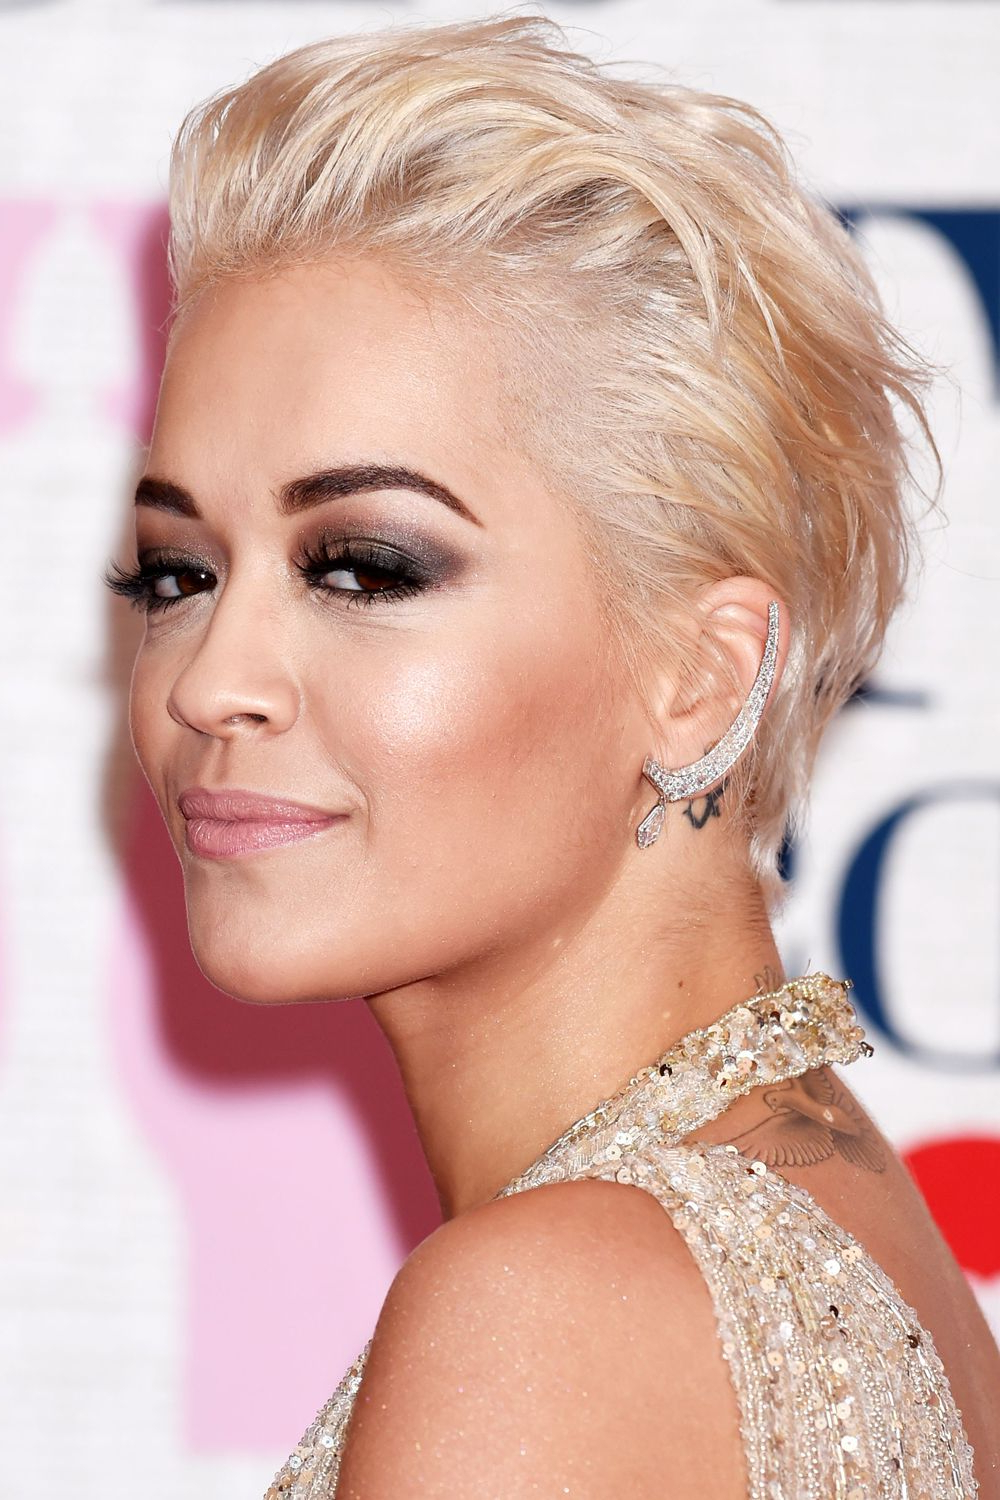 Short Hairstyles: Your A List Inspiration | Short Hairstyle Pertaining To Rita Ora Short Hairstyles (View 25 of 25)